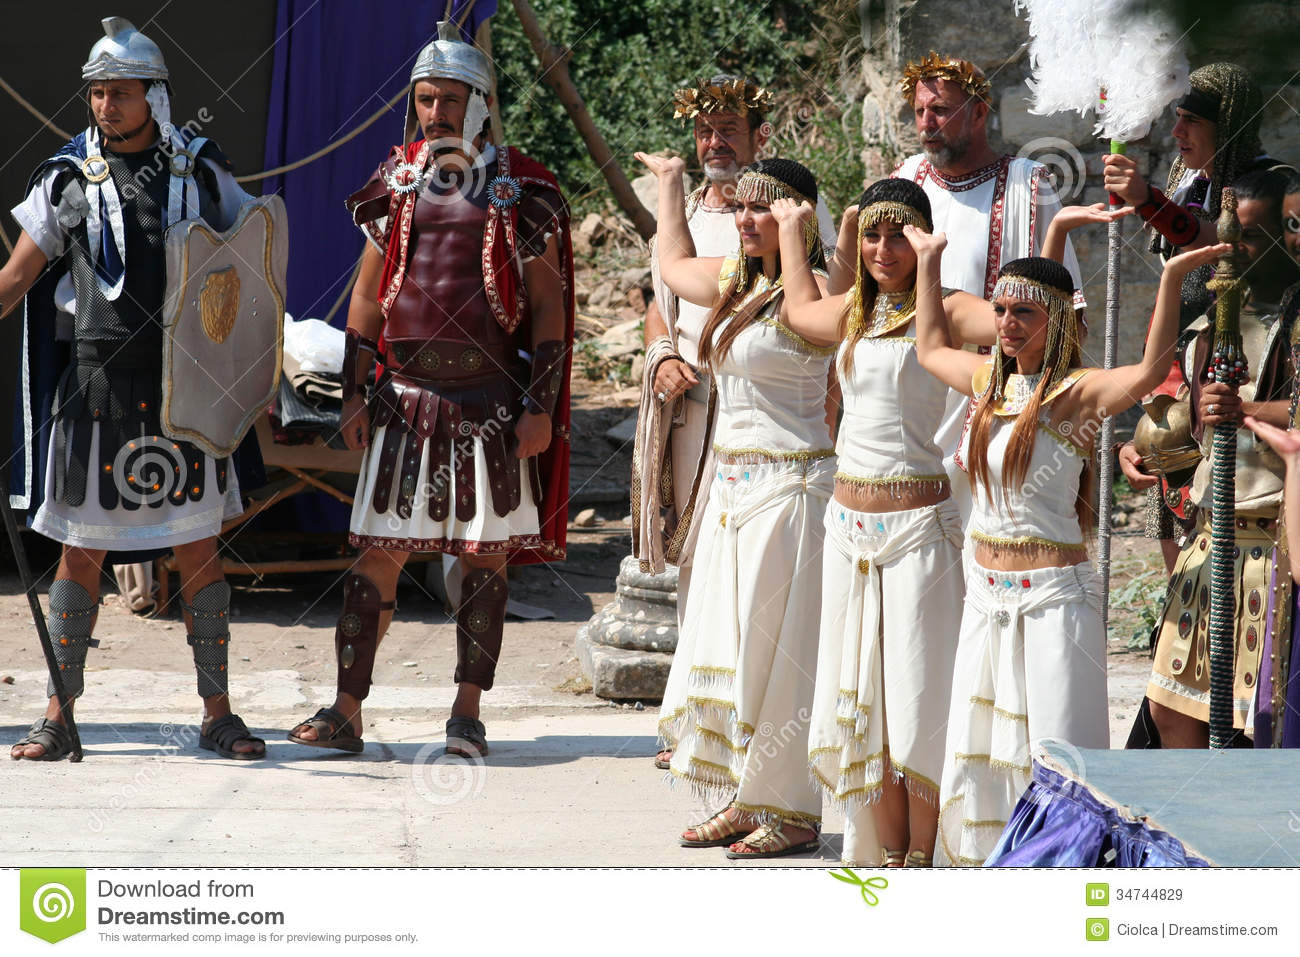 the role of the actors in greek drama Actors and acting sources everything we think we know from the ancient greek theatre, and about the origins of theatre, comes from the following therefore, the conclusions we make are highly conjectural, but we can discuss the standard accepted views of greek theatre reduced role of chorus.